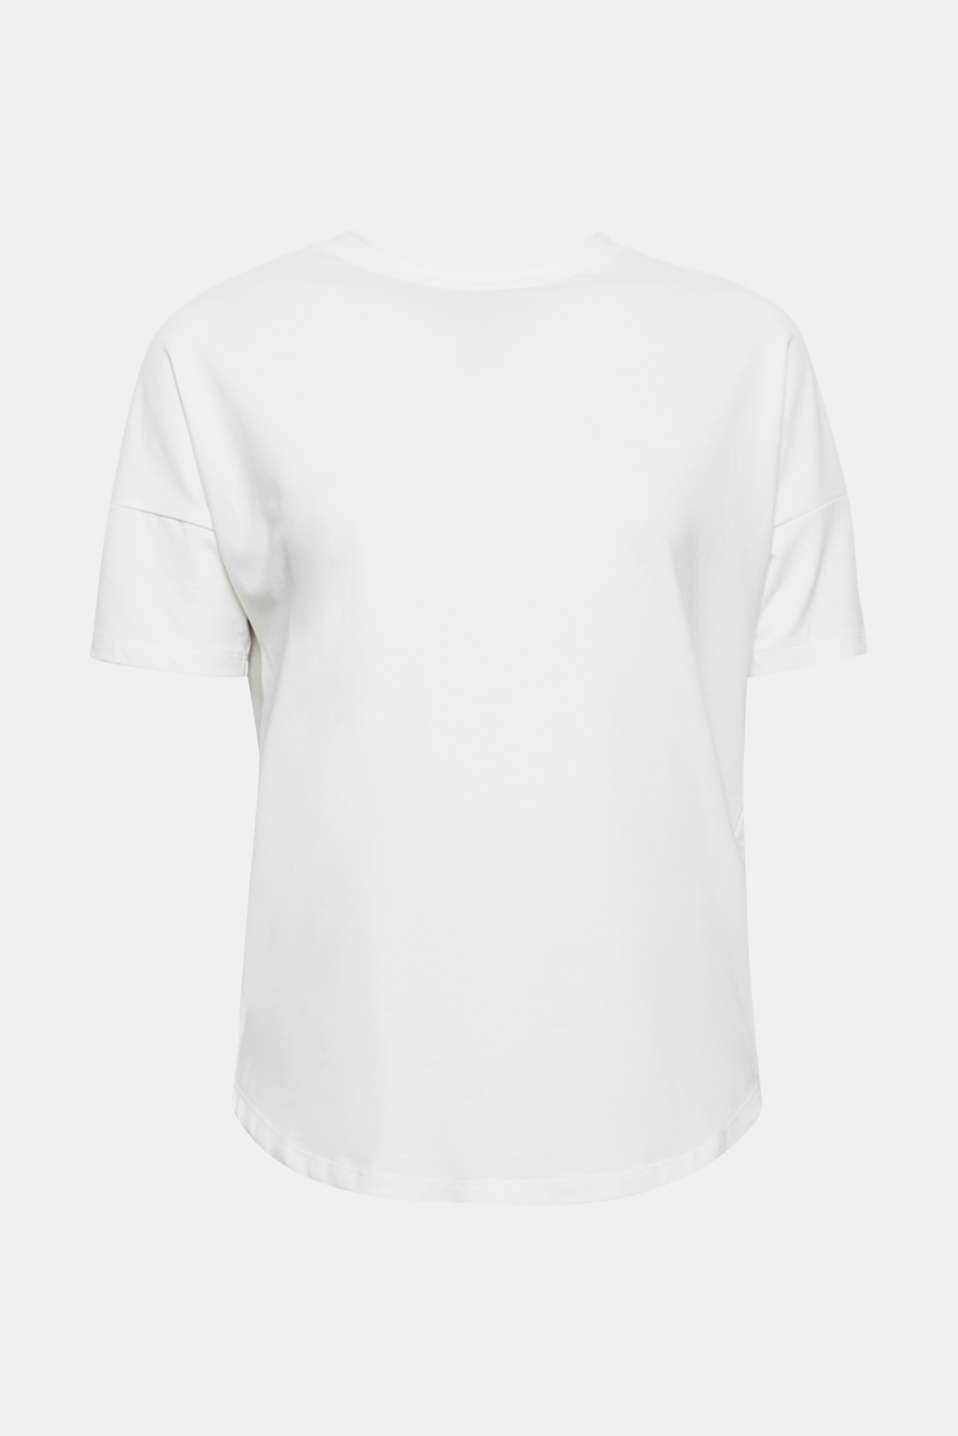 This soft T-shirt with a stand-up collar, dropped shoulders and extremely sustainable organic cotton is a great basic.